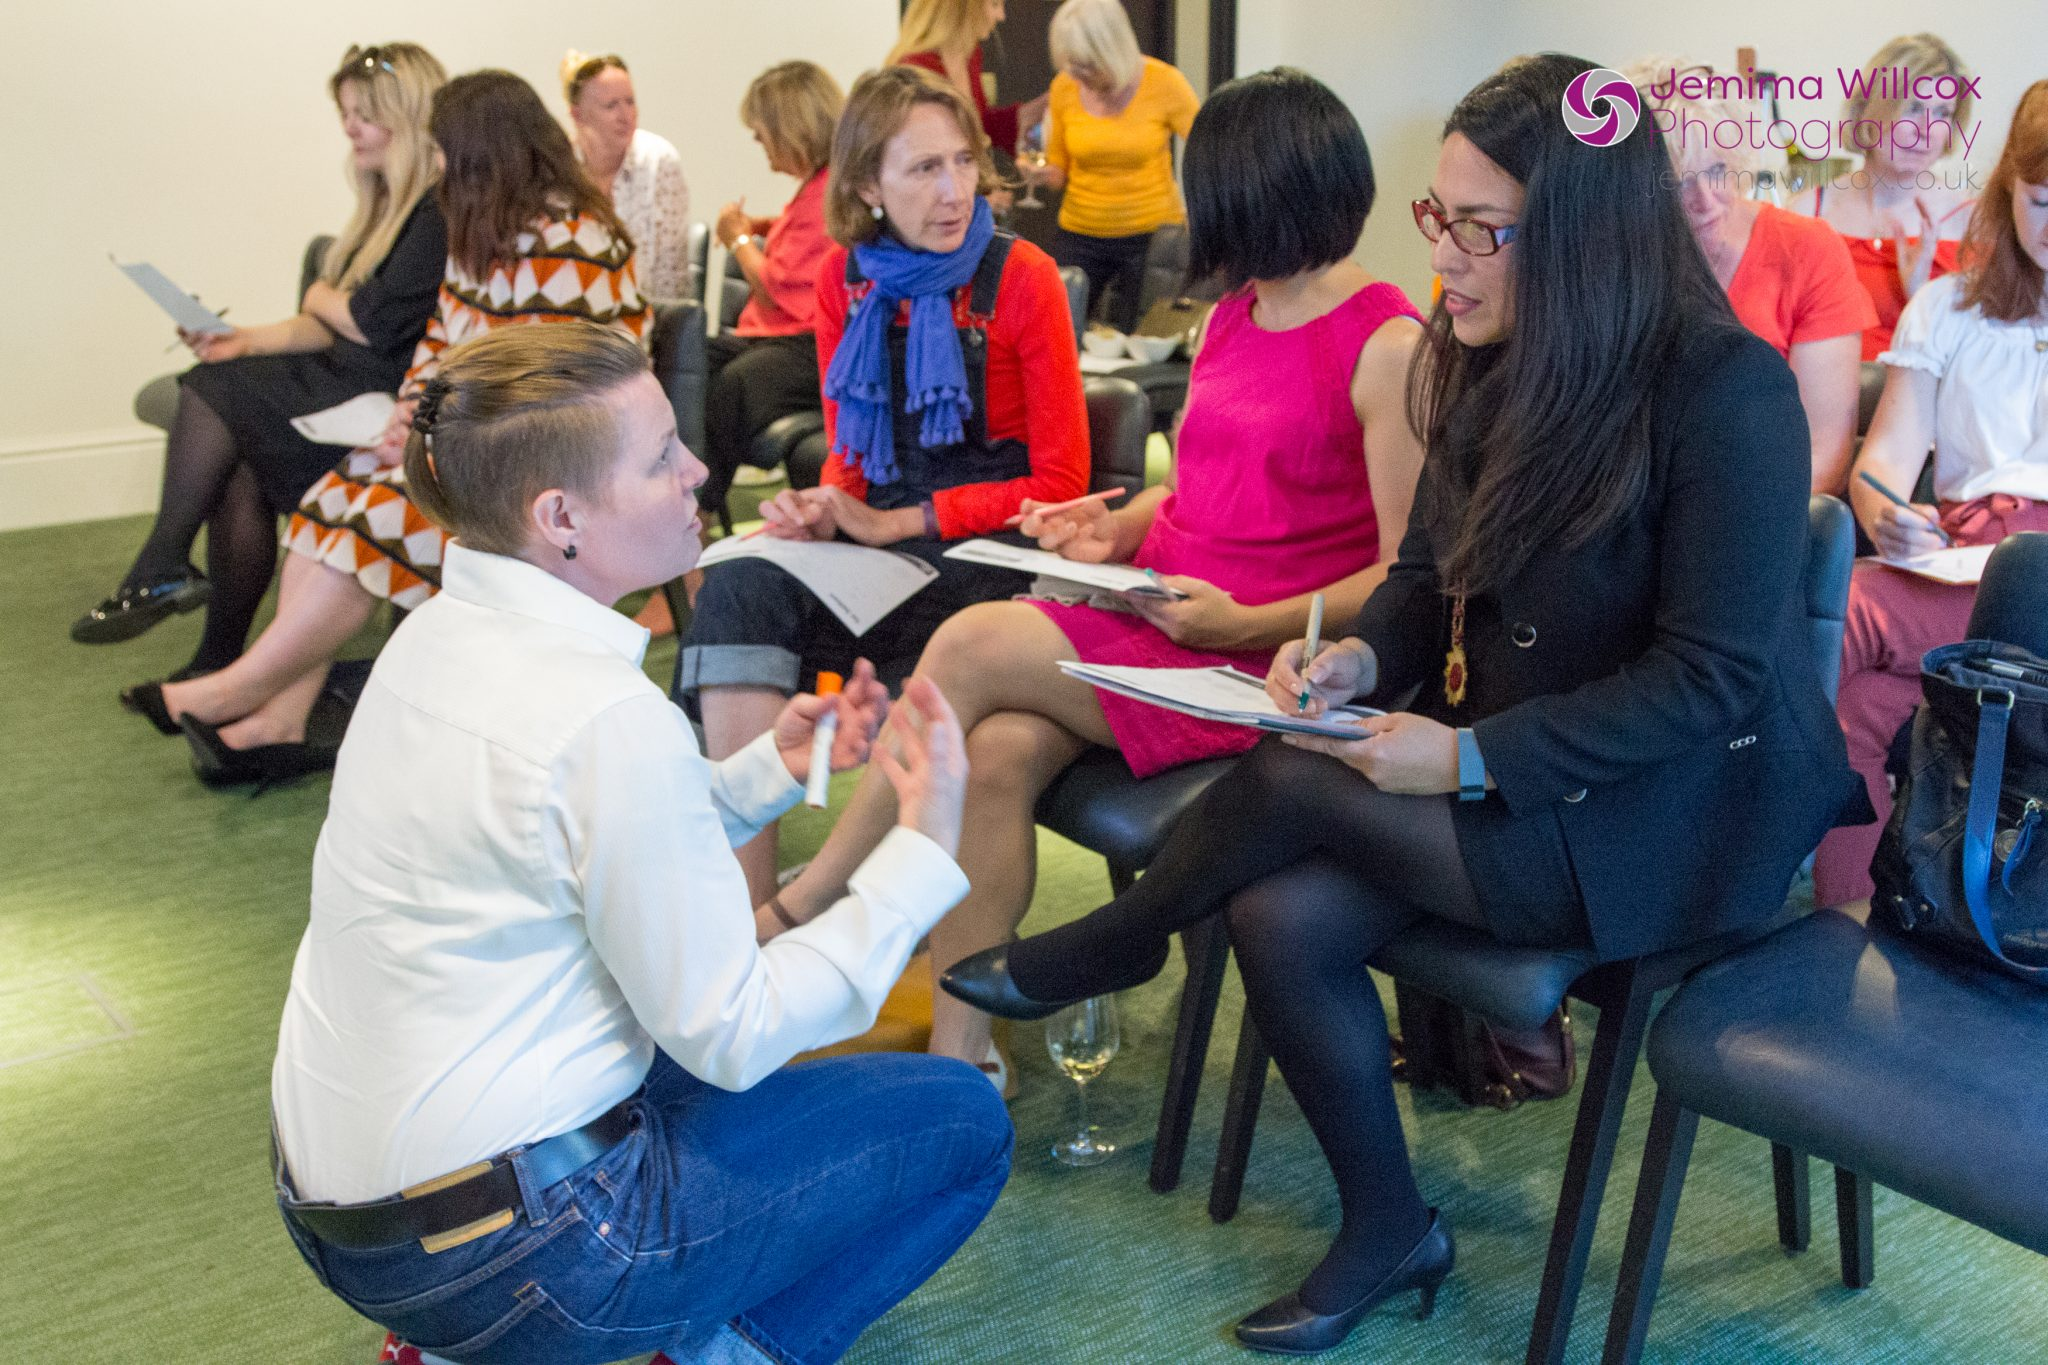 Ultimate Woman June Event Cambridge Jemima Willcox Photography Event images